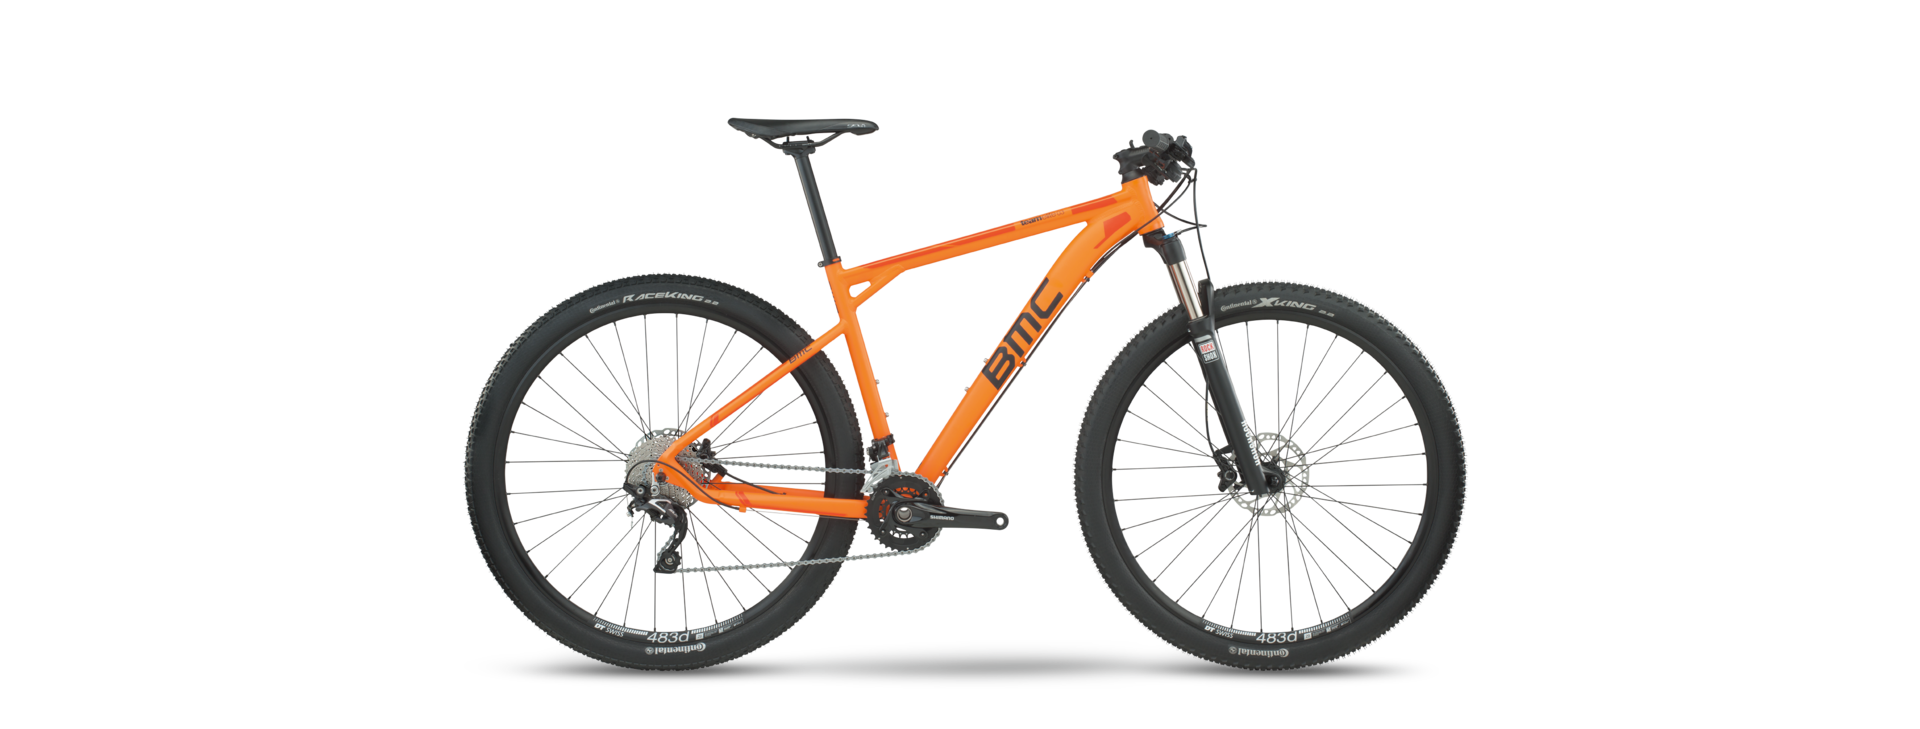 VTT BMC Teamelite TE03 Deore SLX 2017 Orange